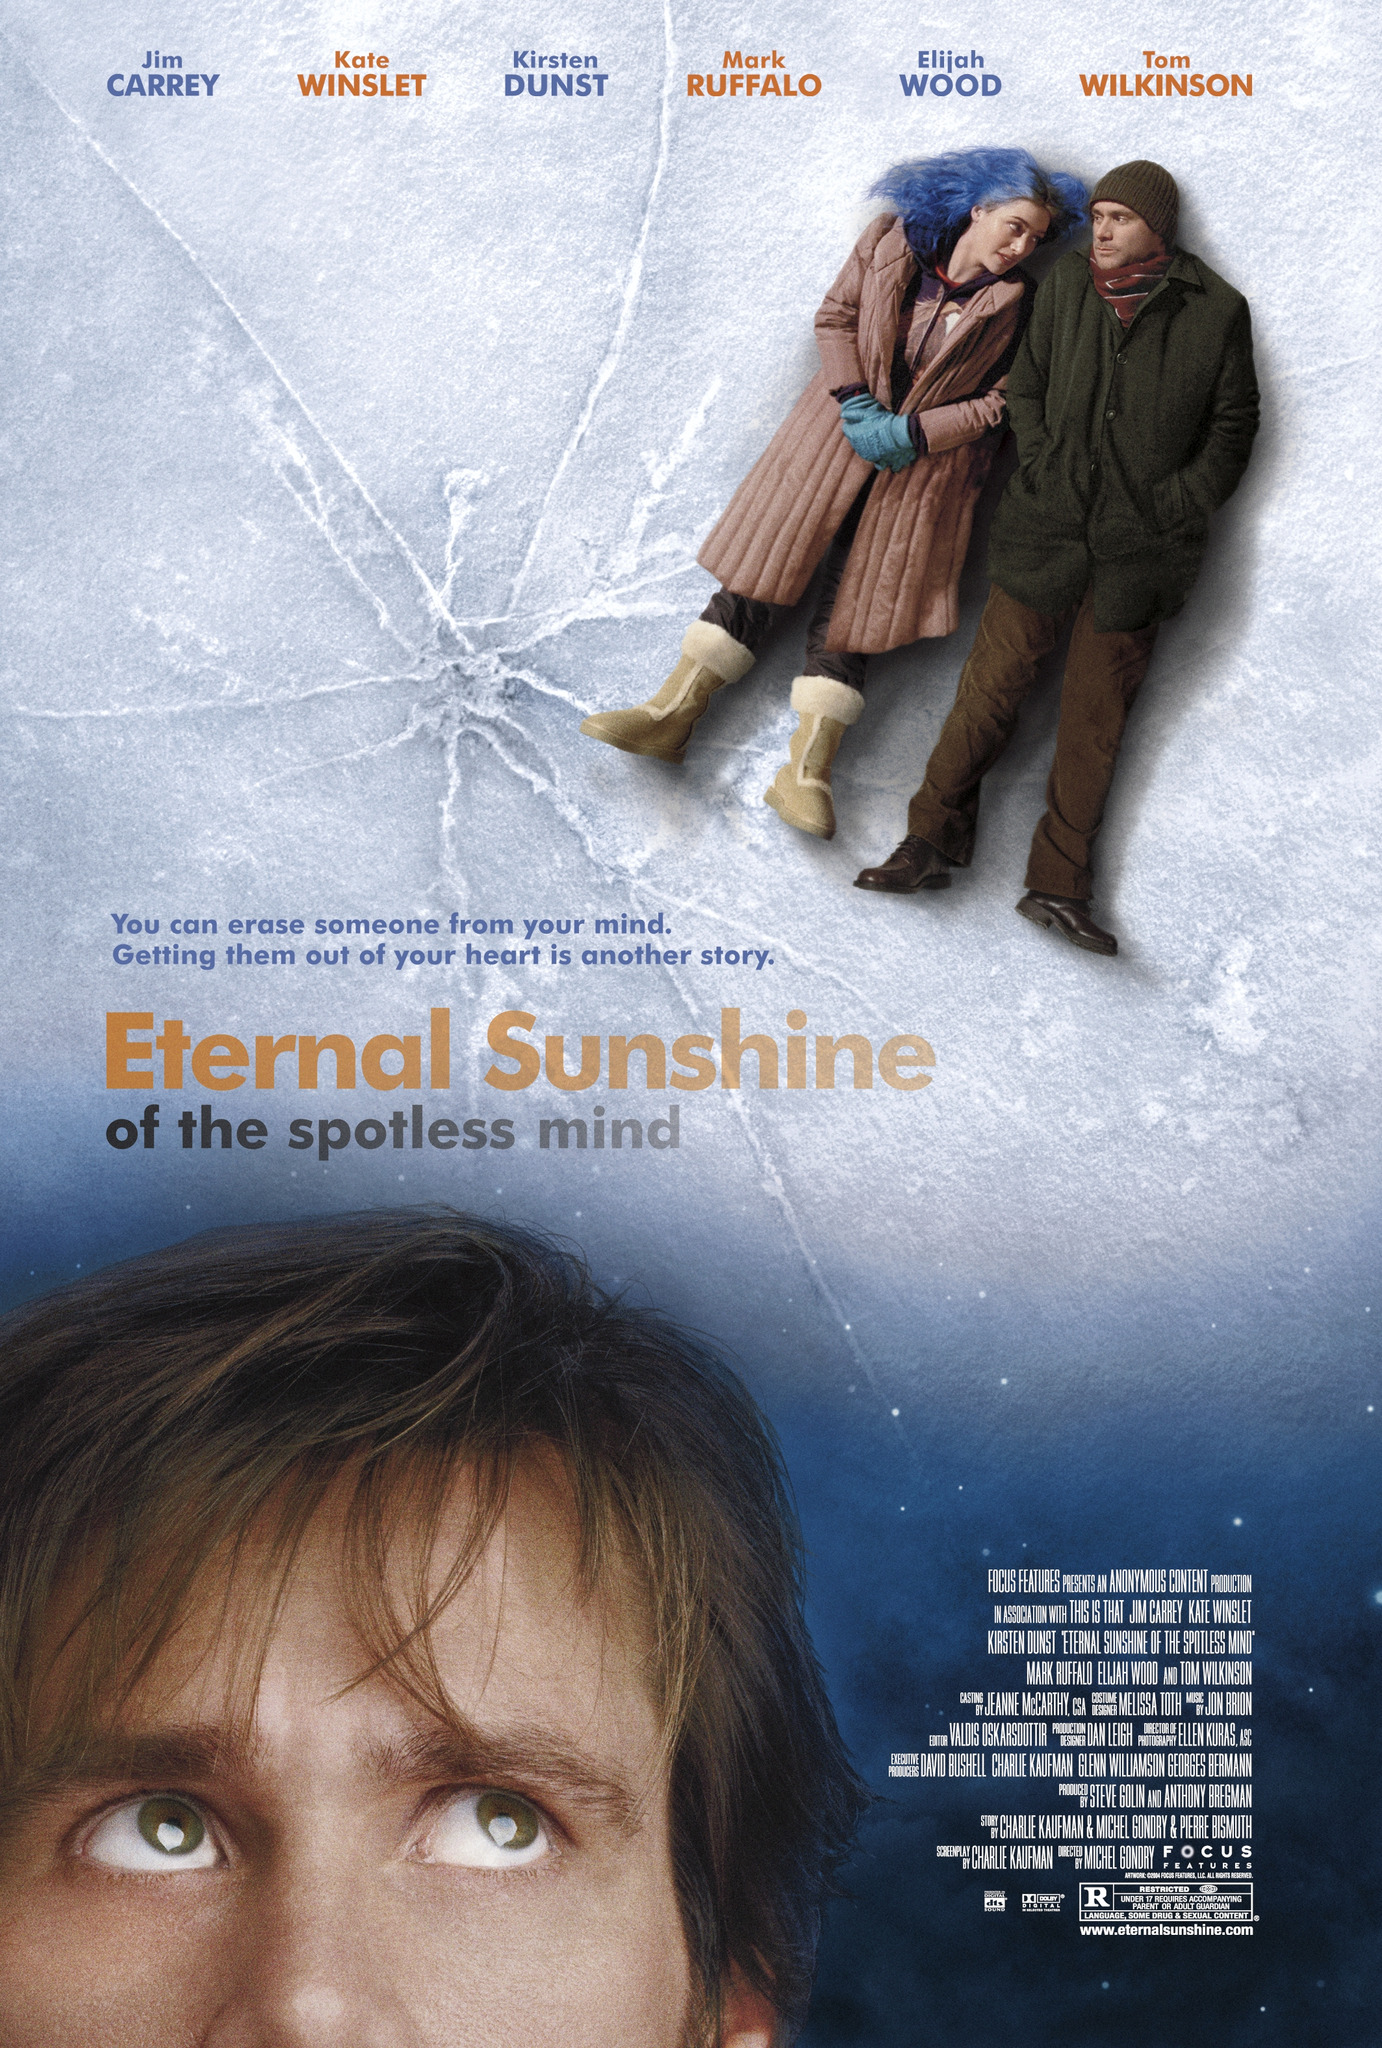 Eternal Sunshine of the Spotless Mind 2004 IMDb